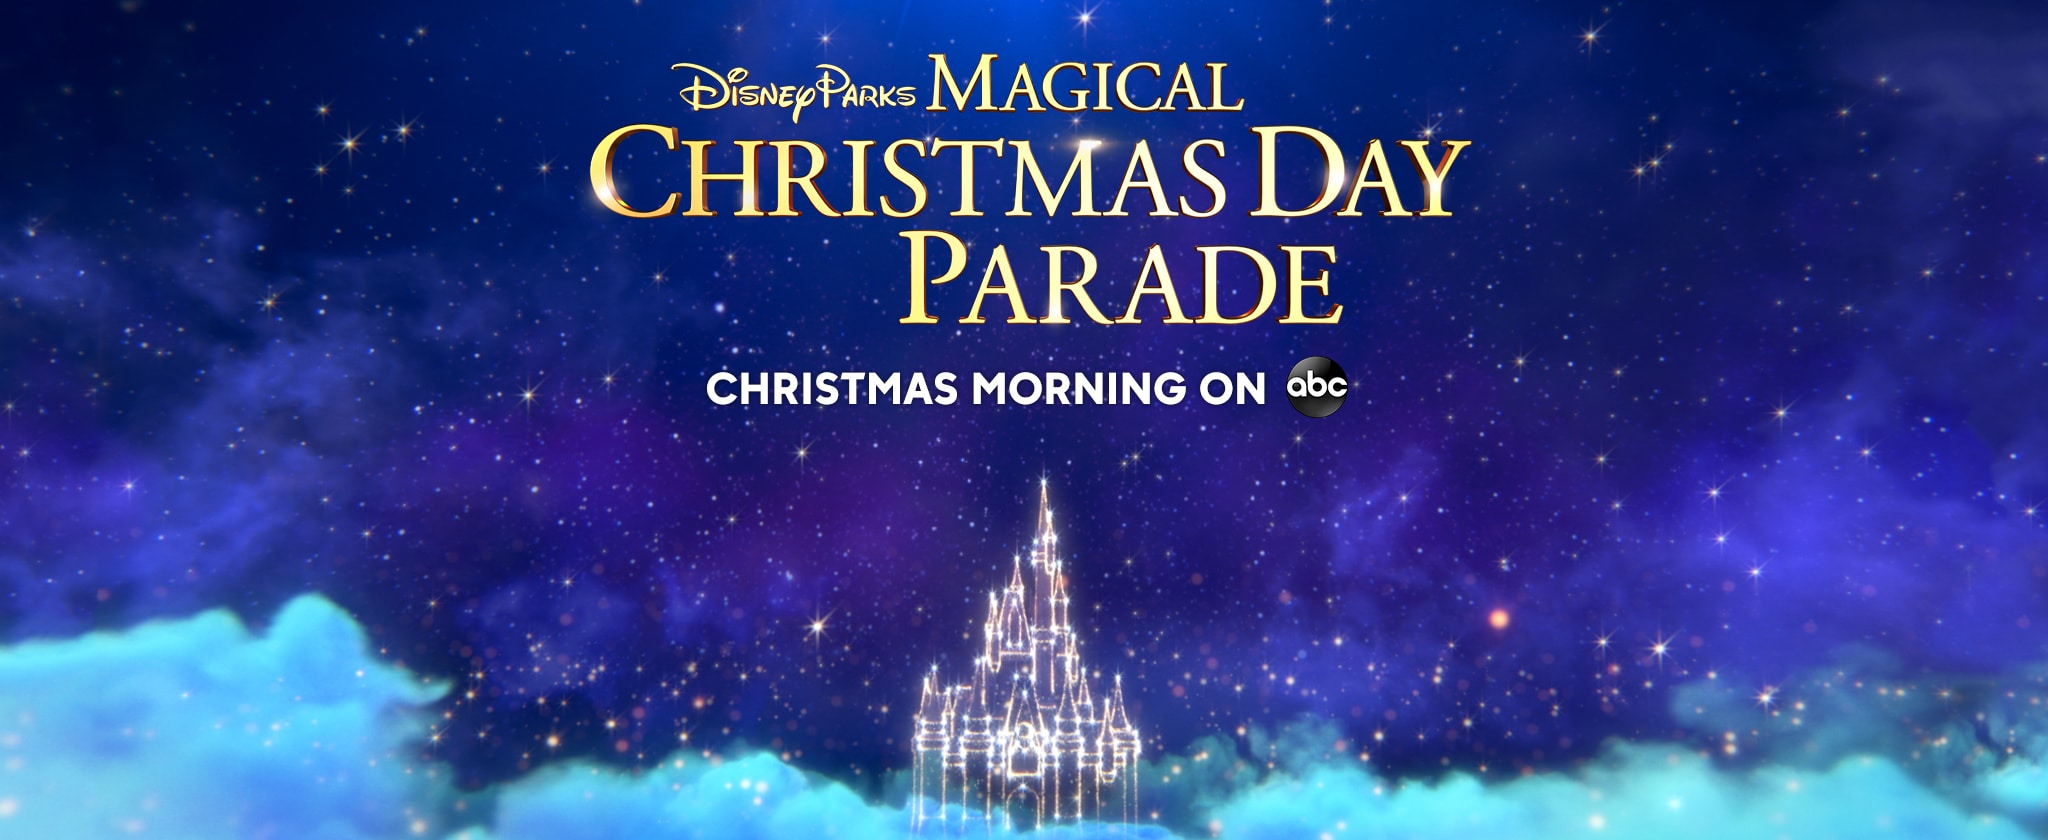 Disney Parks Magical Christmas Day Parade - Christmas Morning on ABC